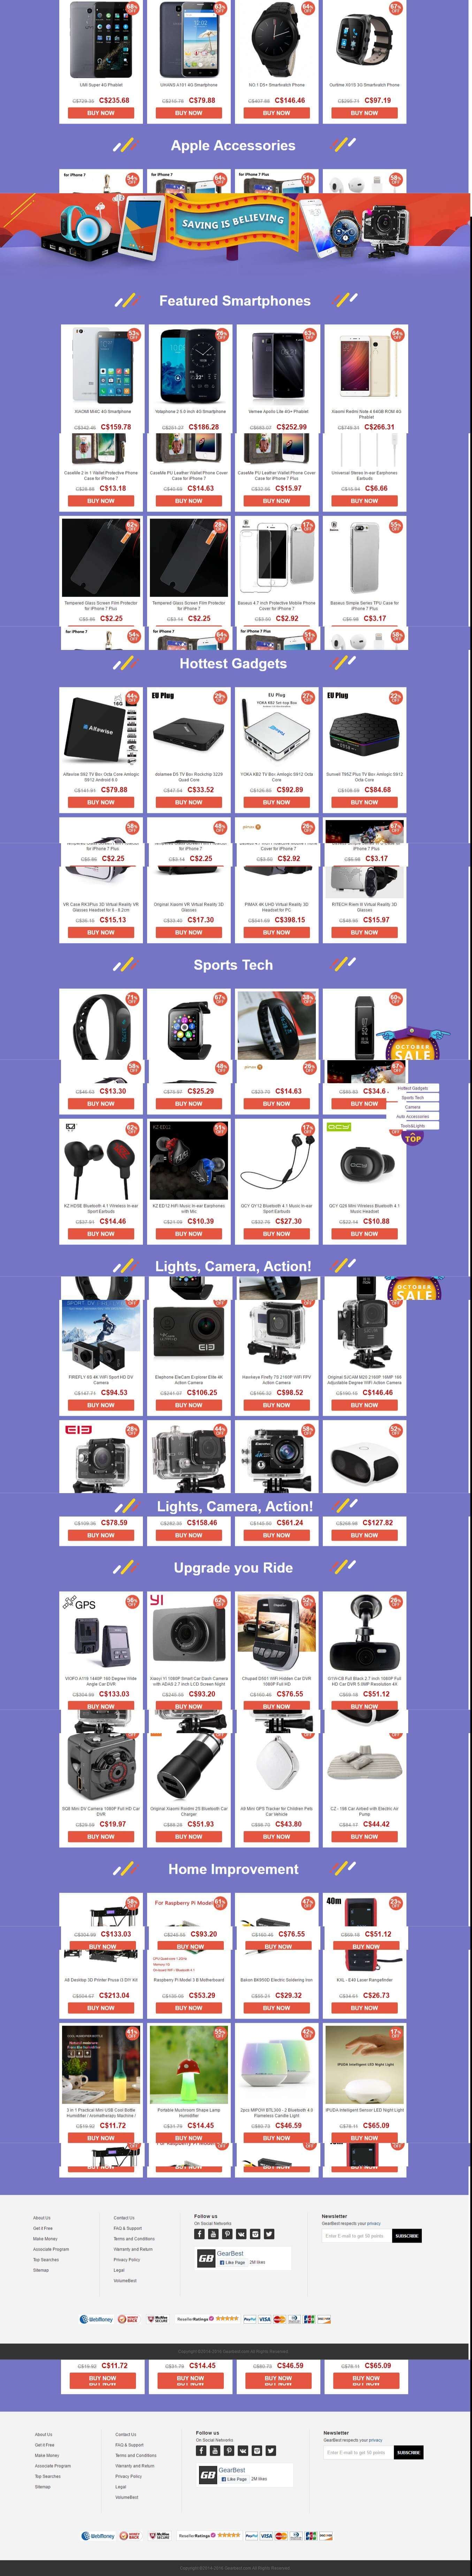 Full Product List- Gearbest's Hottest October Sale